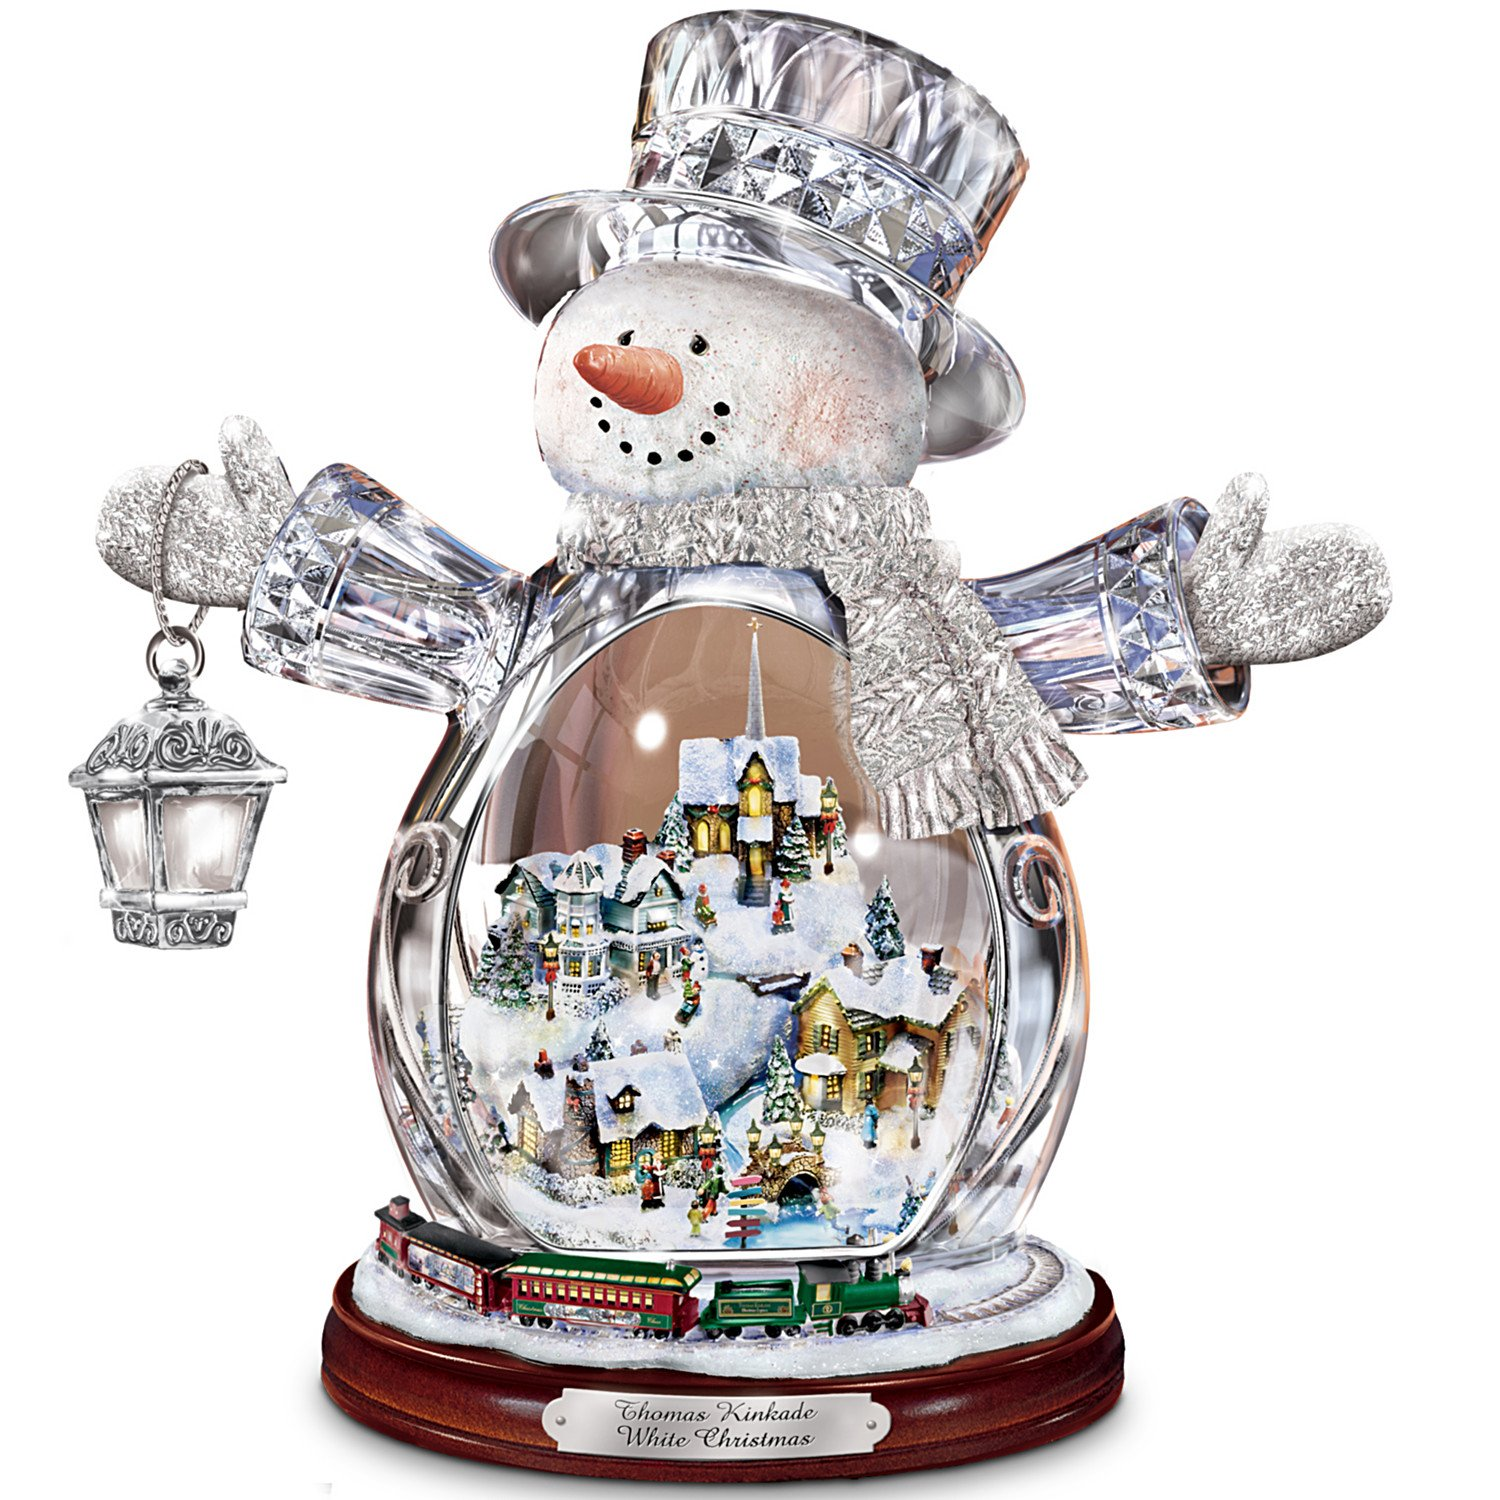 Thomas Kinkade Crystal Snowman Figurine Featuring Light-Up Village And Animated Train by The Bradford Editions (1) by Bradford Exchange